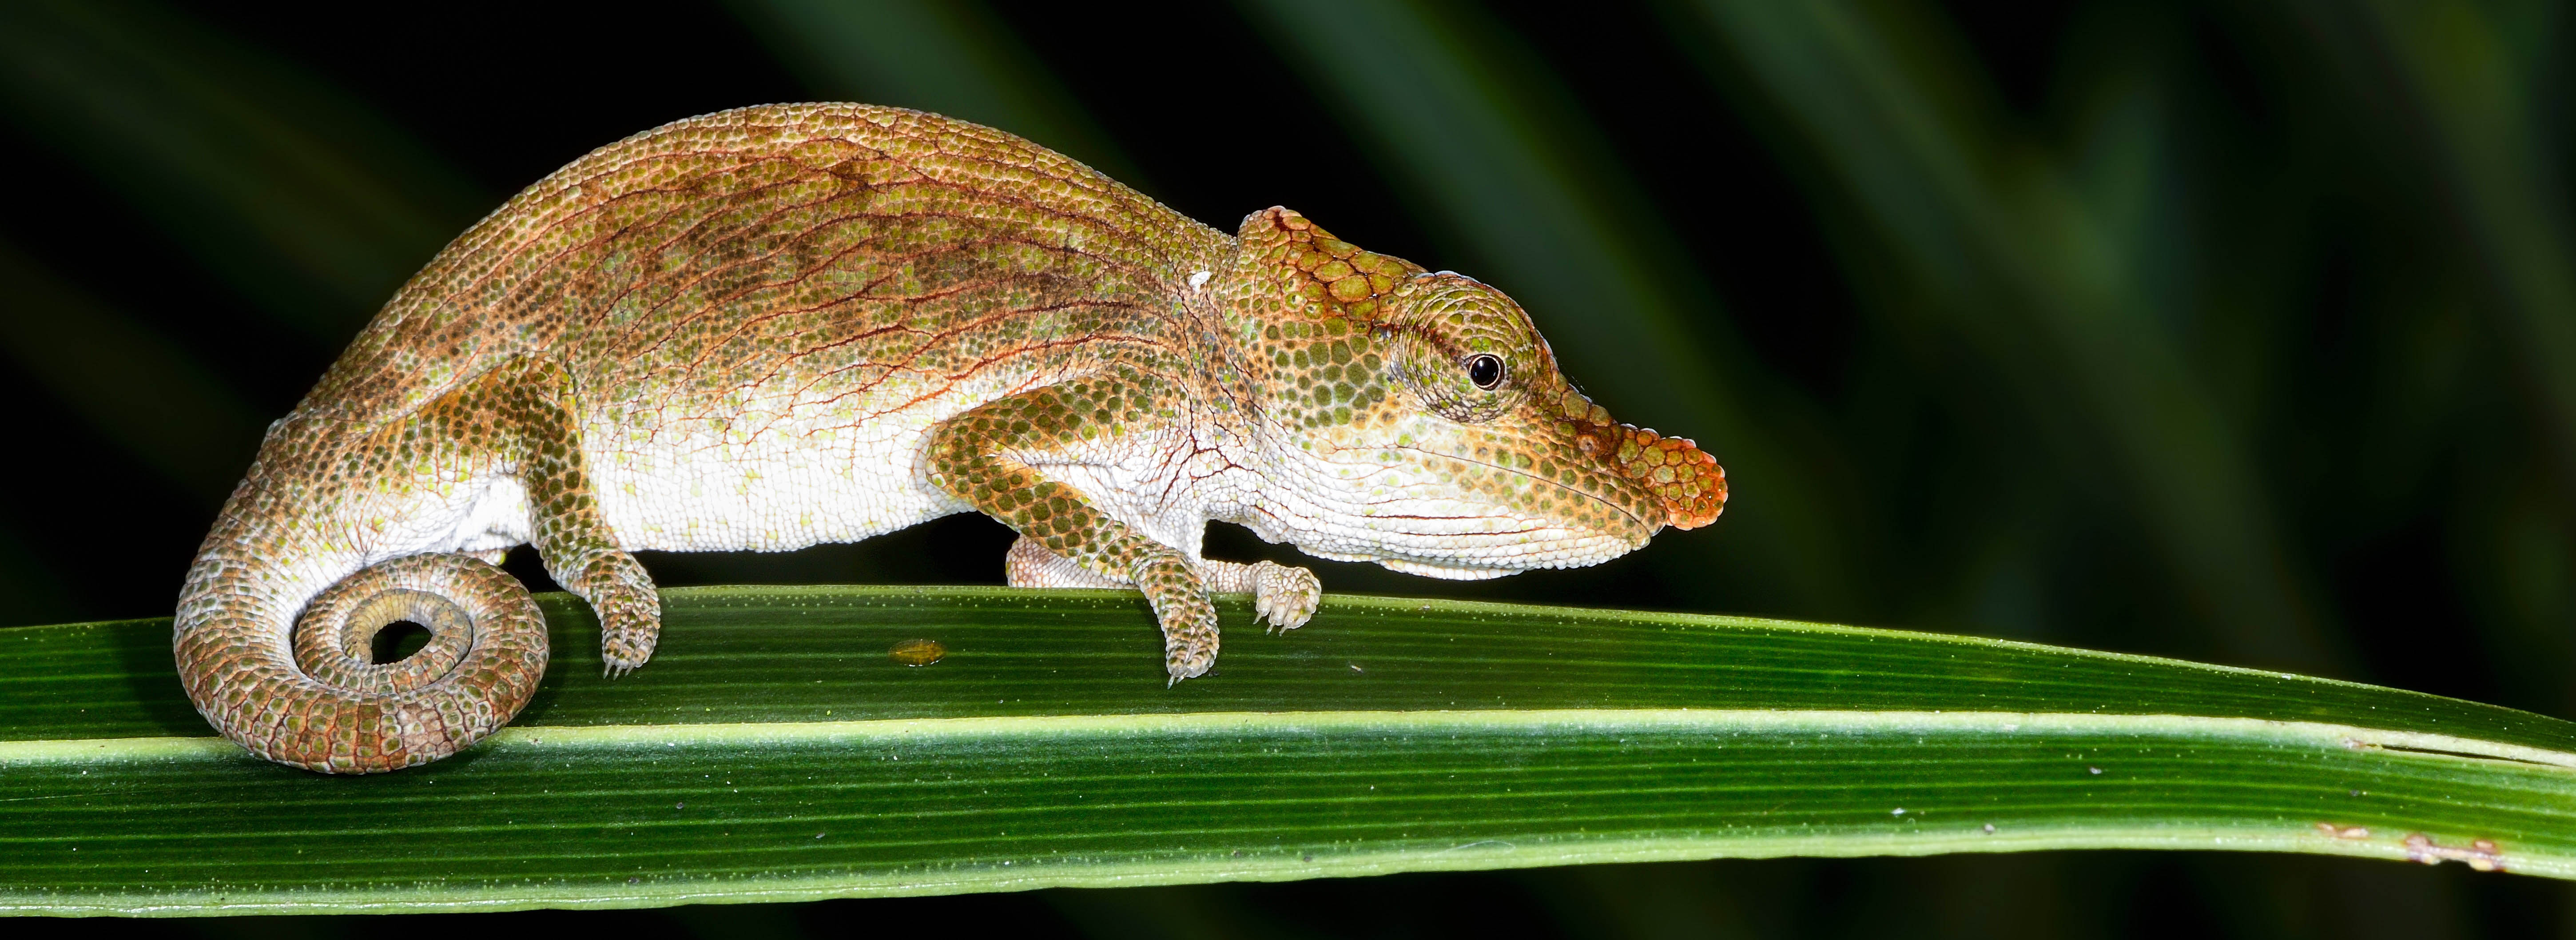 Big-nosed chameleon